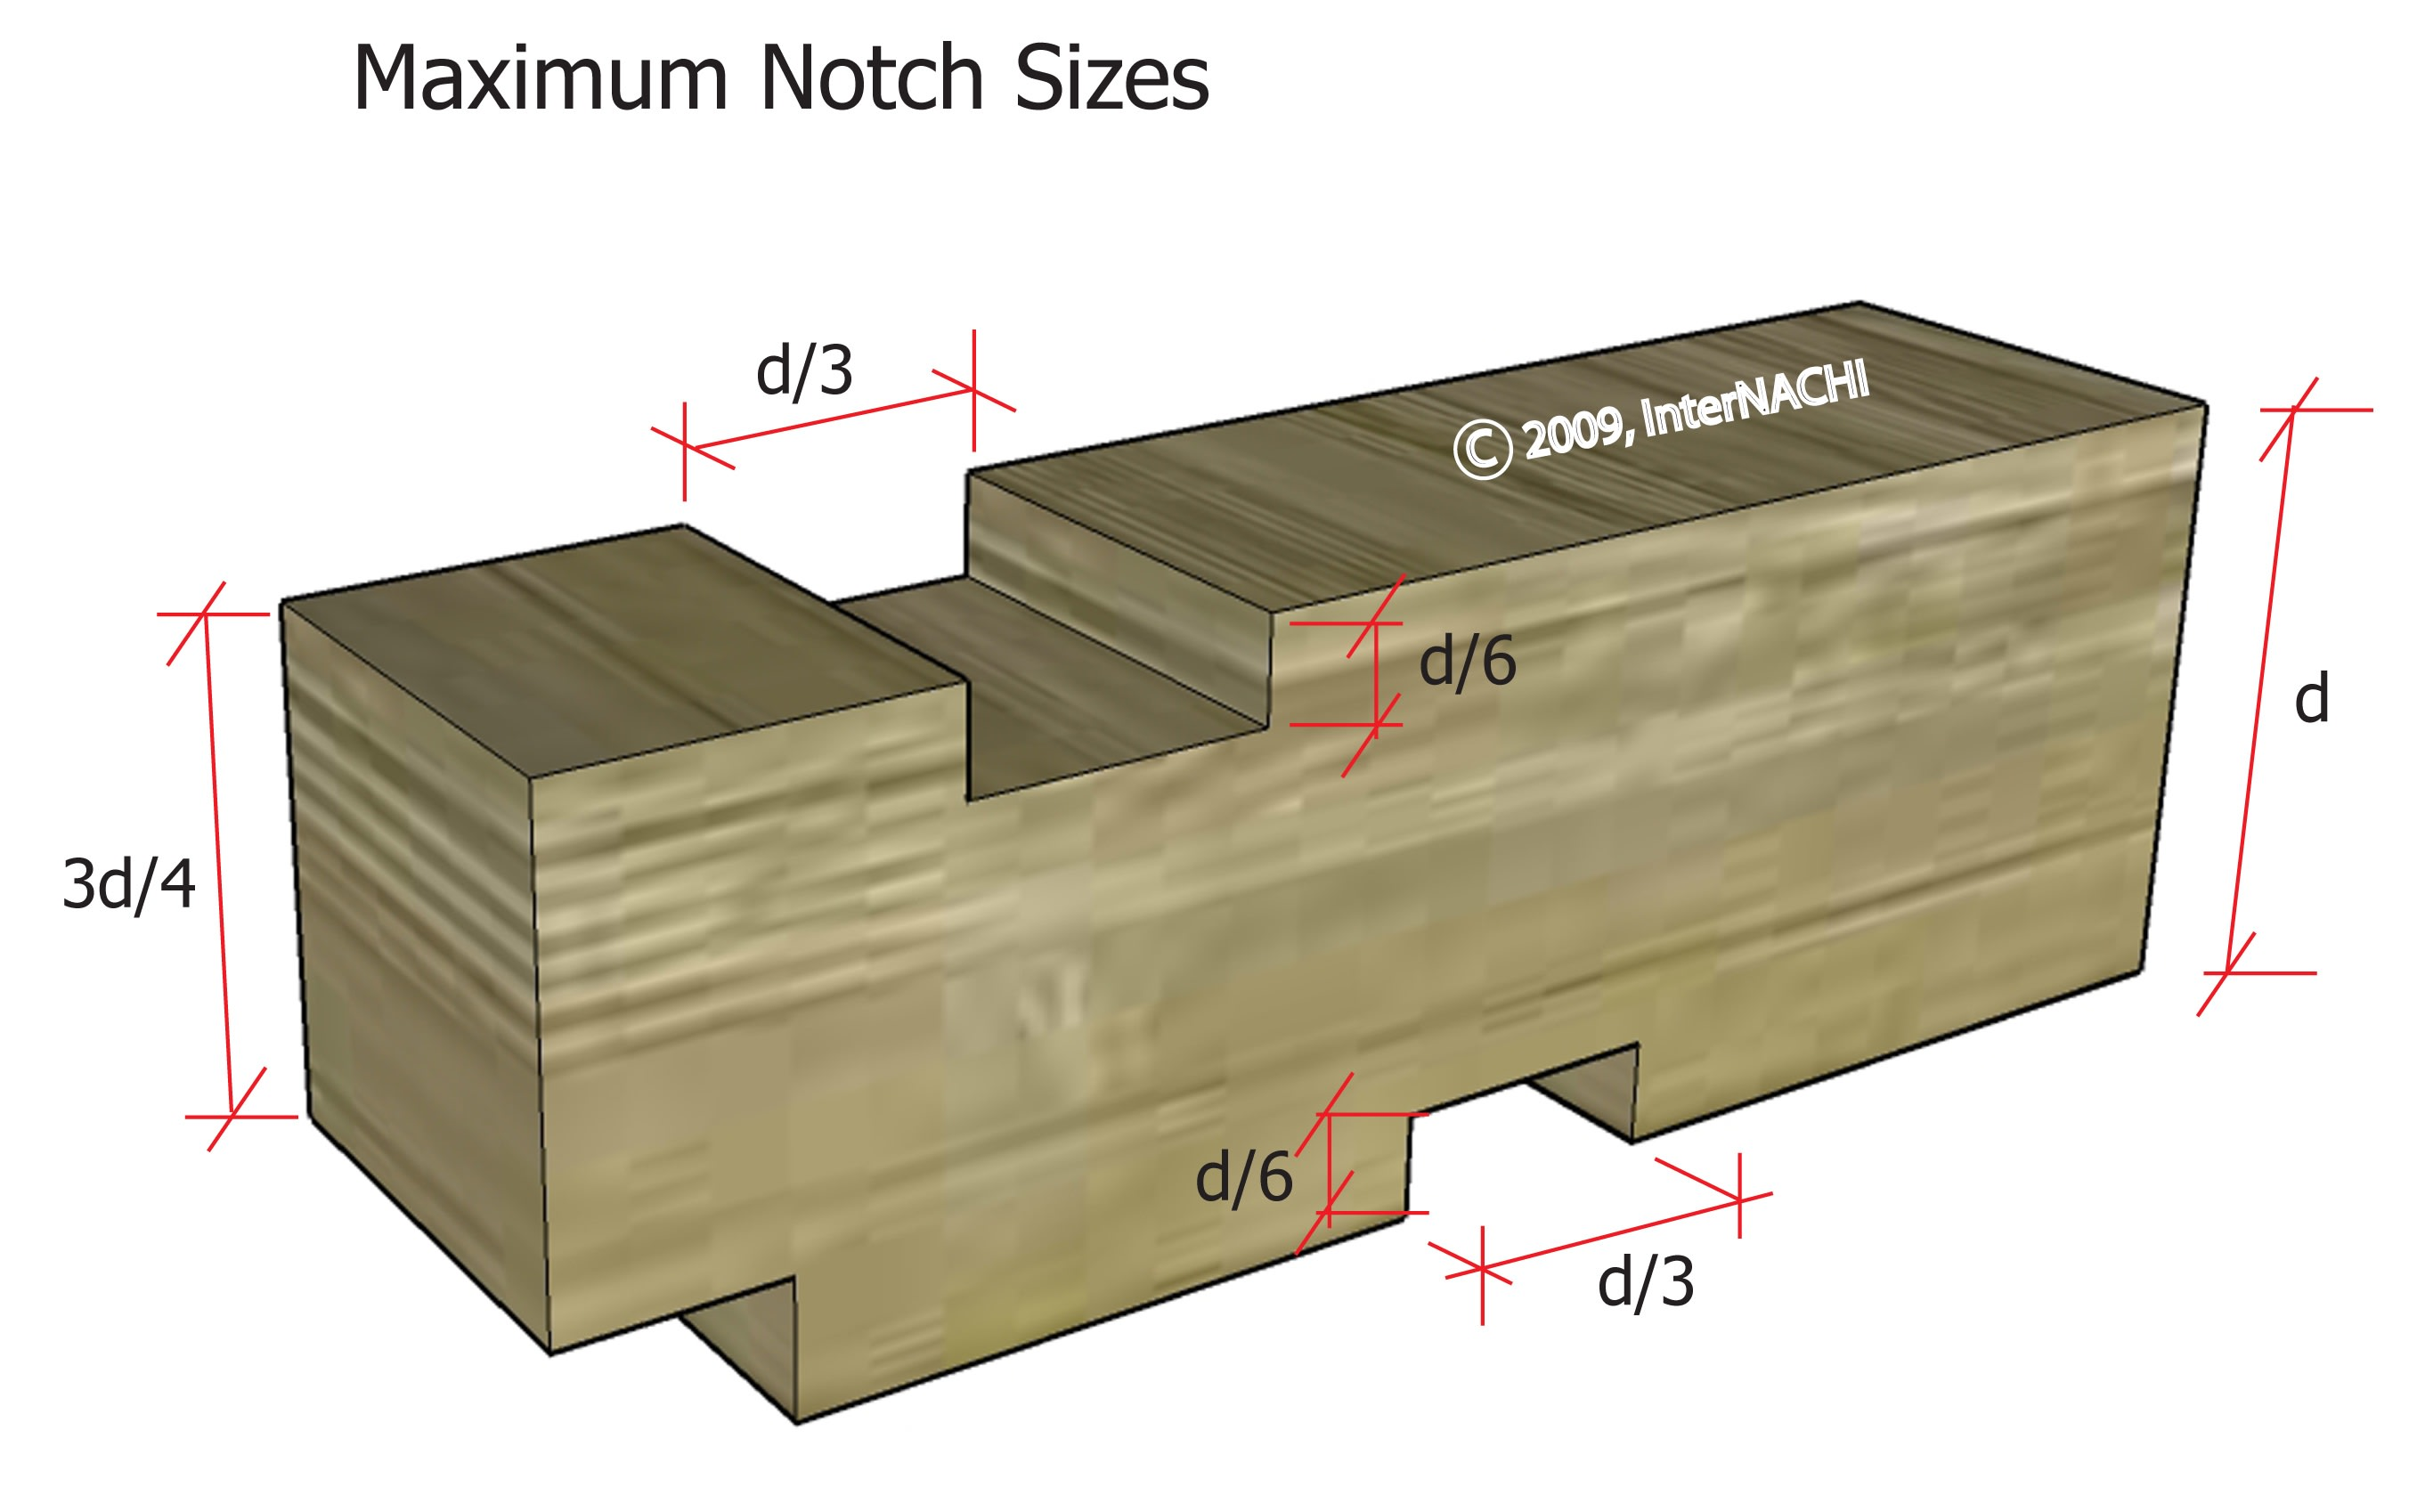 Maximum notch sizes.